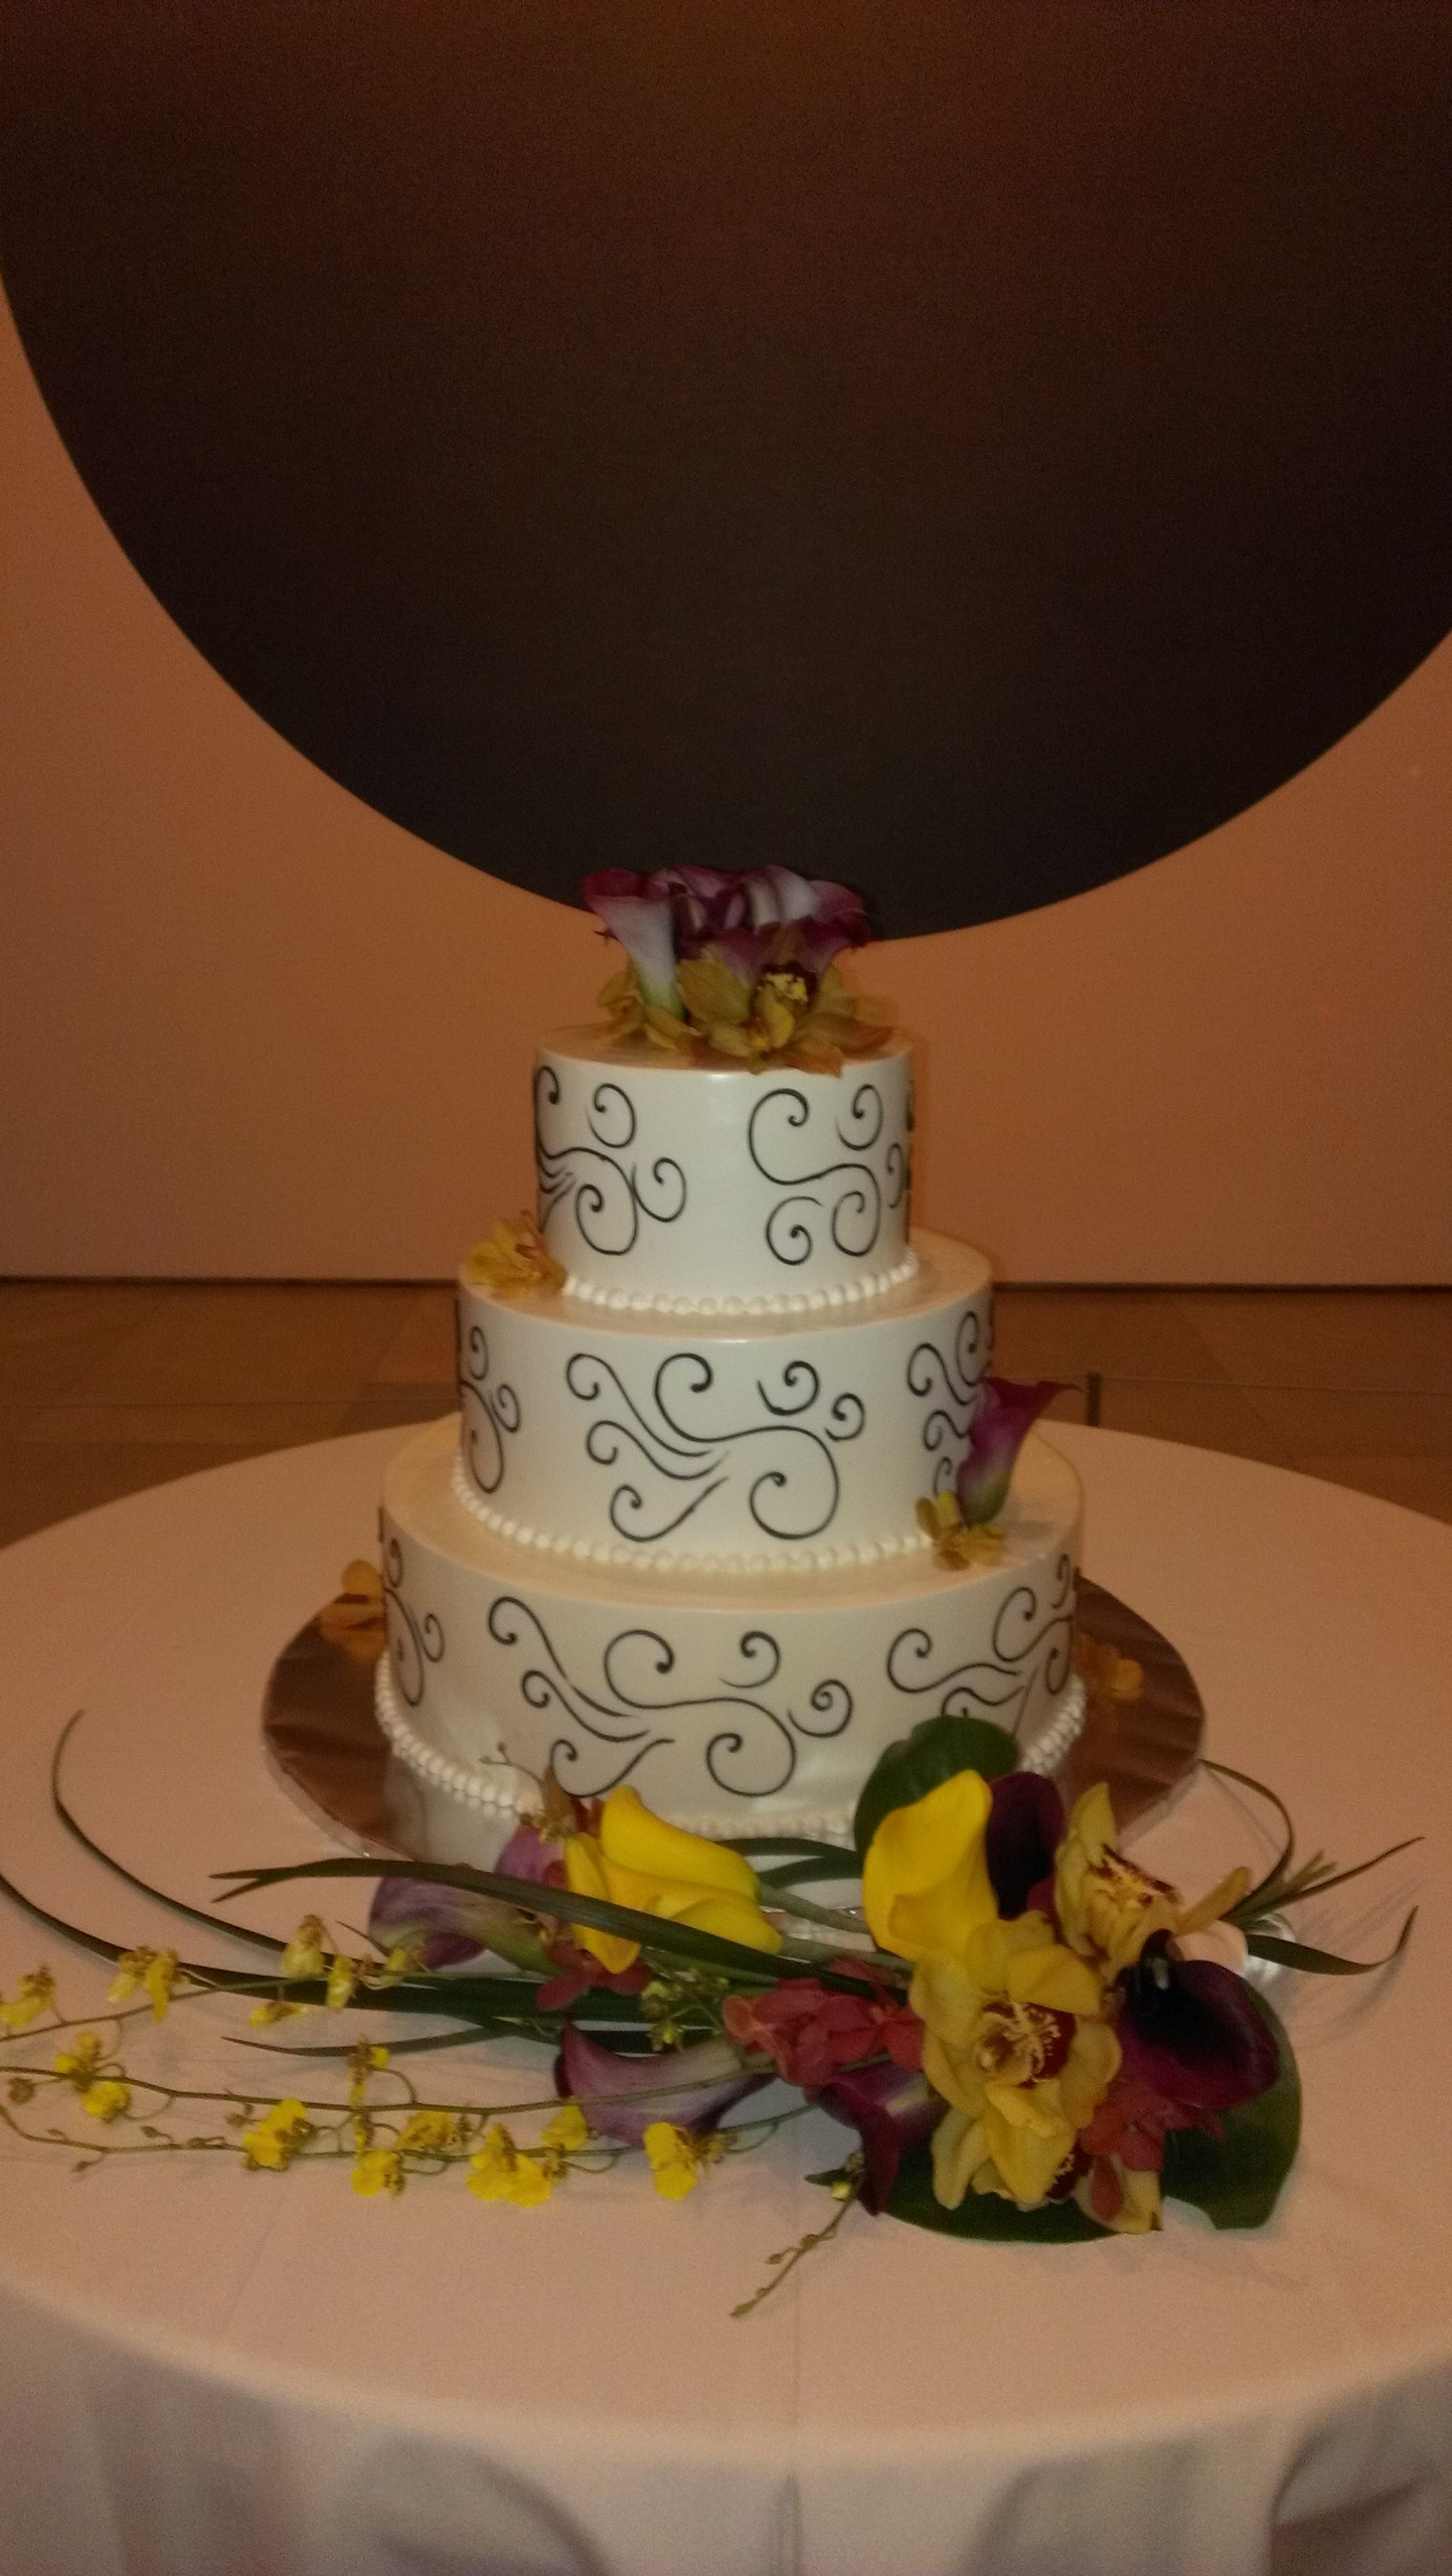 Contemporary wedding cake with original art backdrop at Phoenix Art Museum.  Florals by Karen Bever of Boka Event Florals. Cake by Honeymoon Sweets.